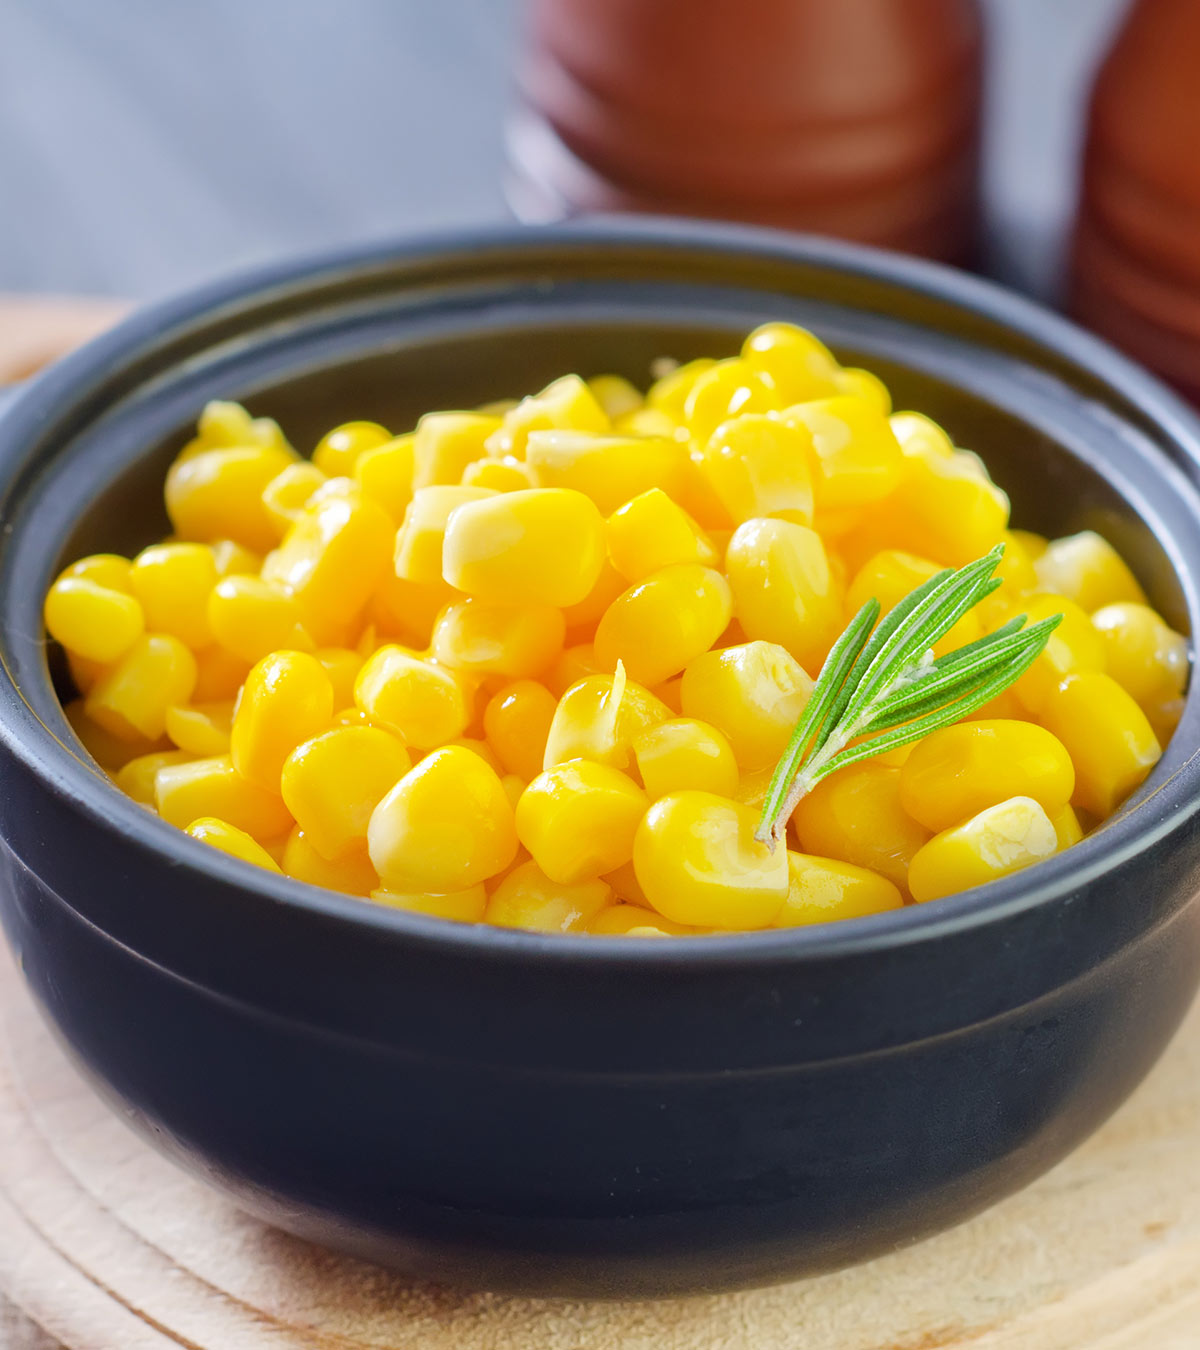 Is Corn Good For Babies?